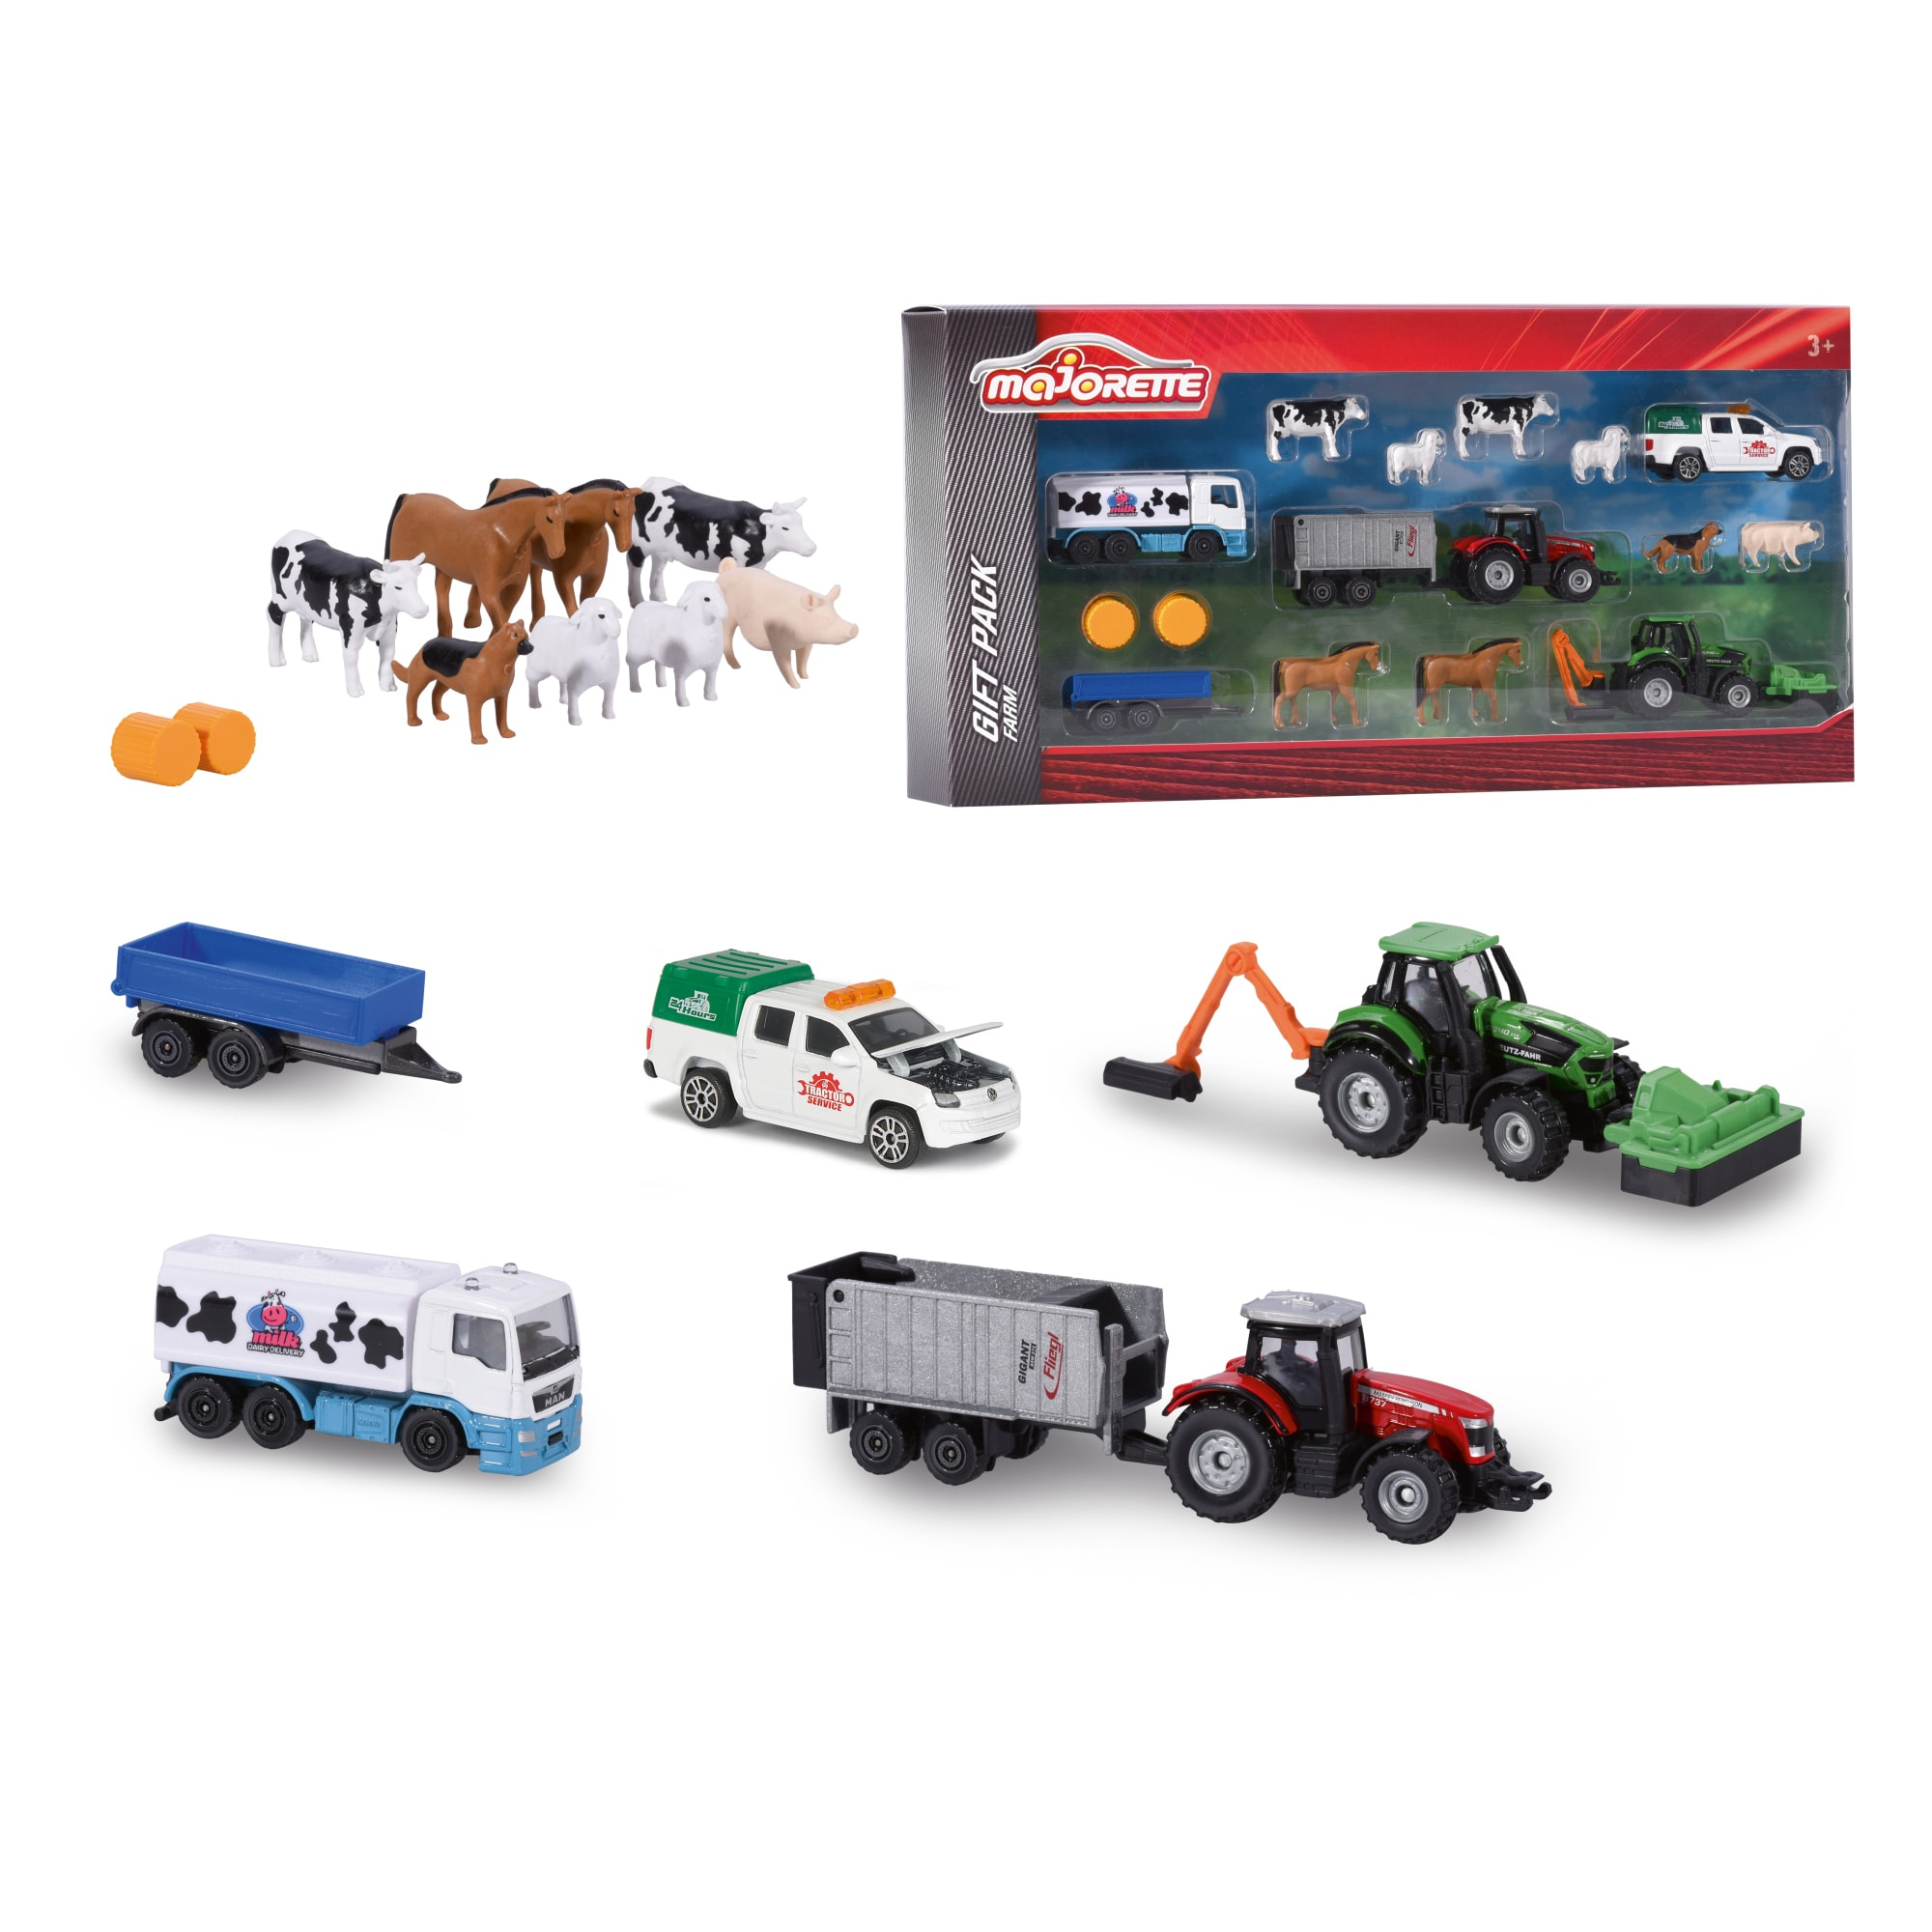 Majorette Farm Die-Cast 16 Piece Playset, 1:64 Scale by Dickie Toys